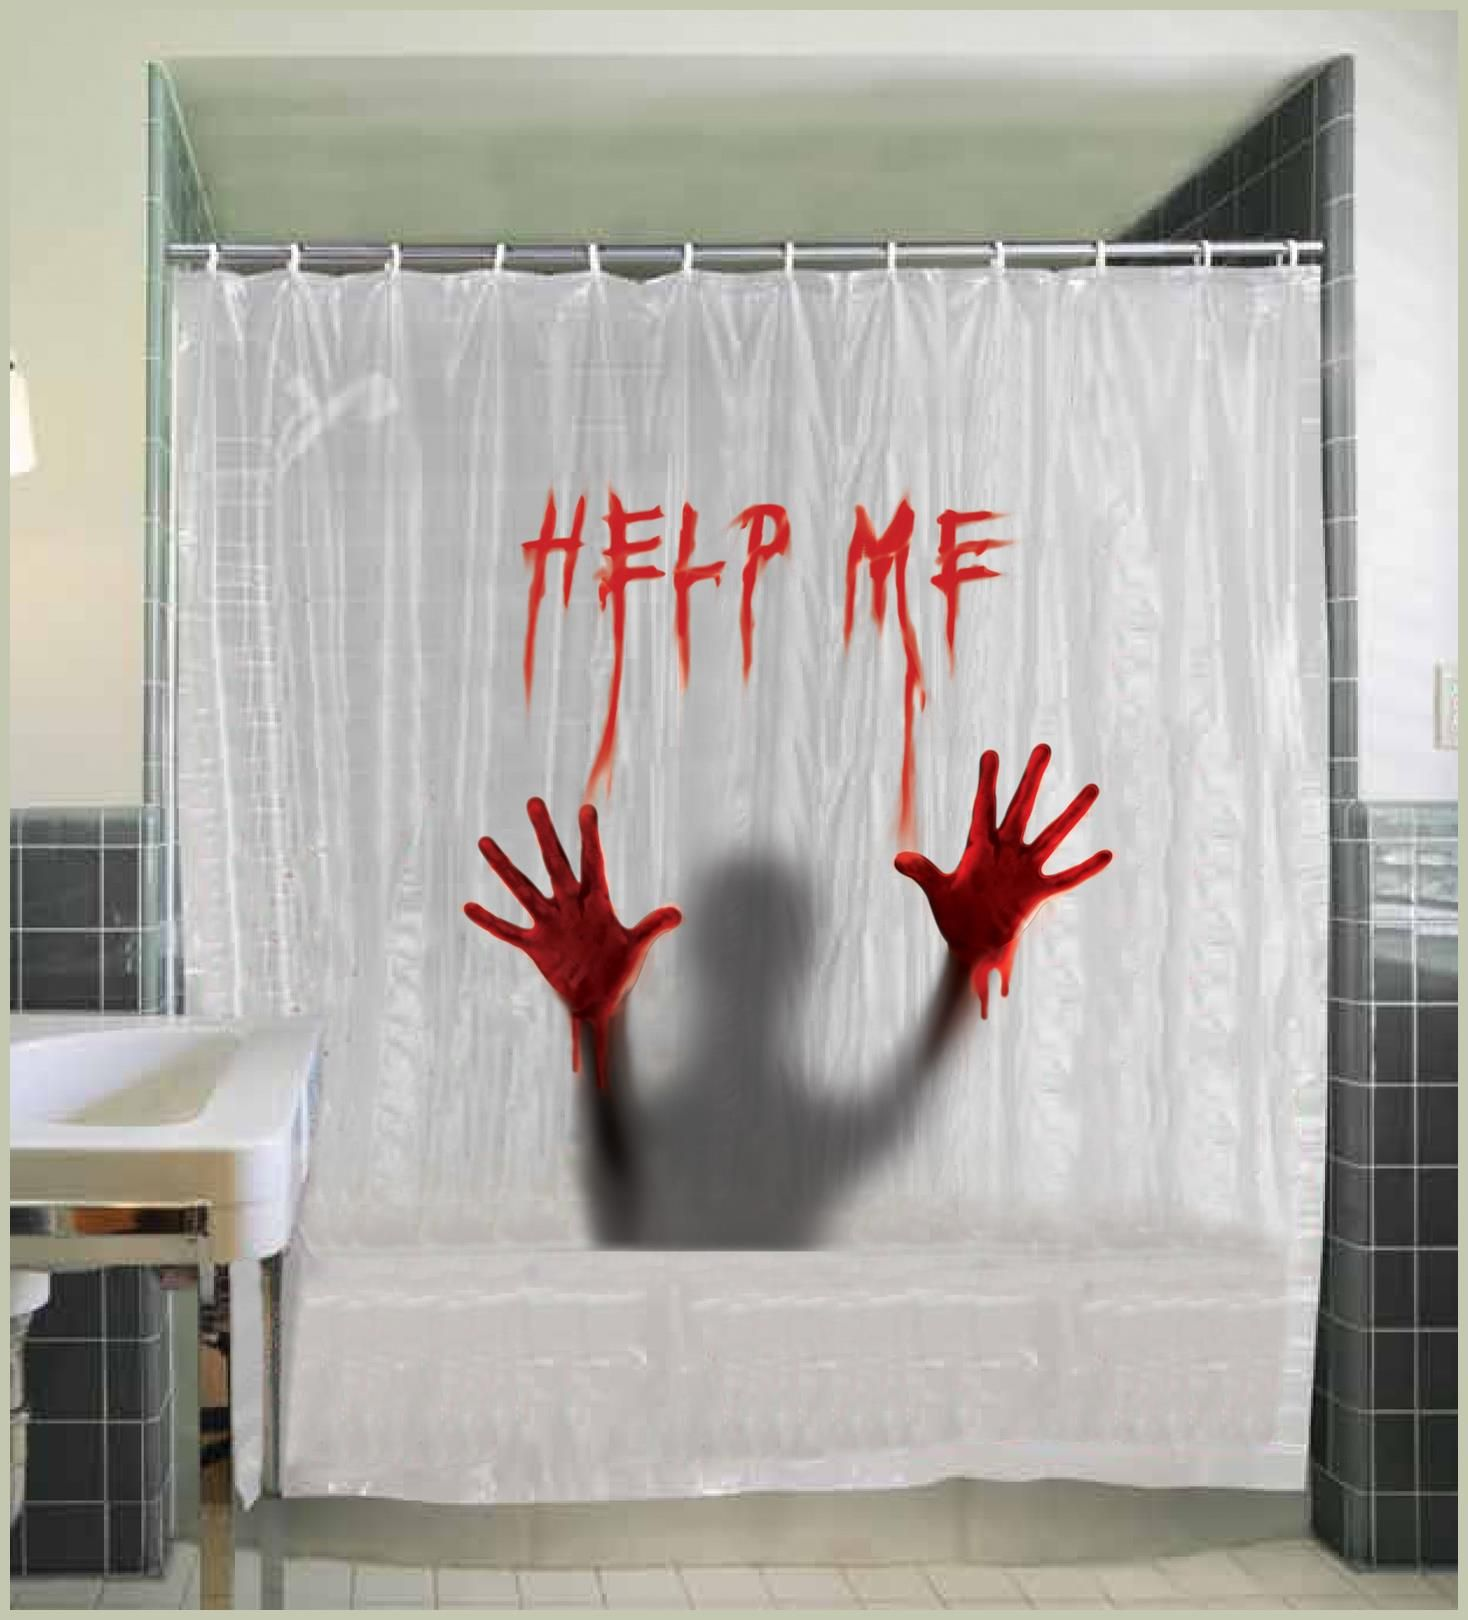 Divinly Beautiful Help Me Shower Curtain Cool Array Of Spooky Horror Backdrop Wall Stickers Add Ons For Halloween At PartyBell